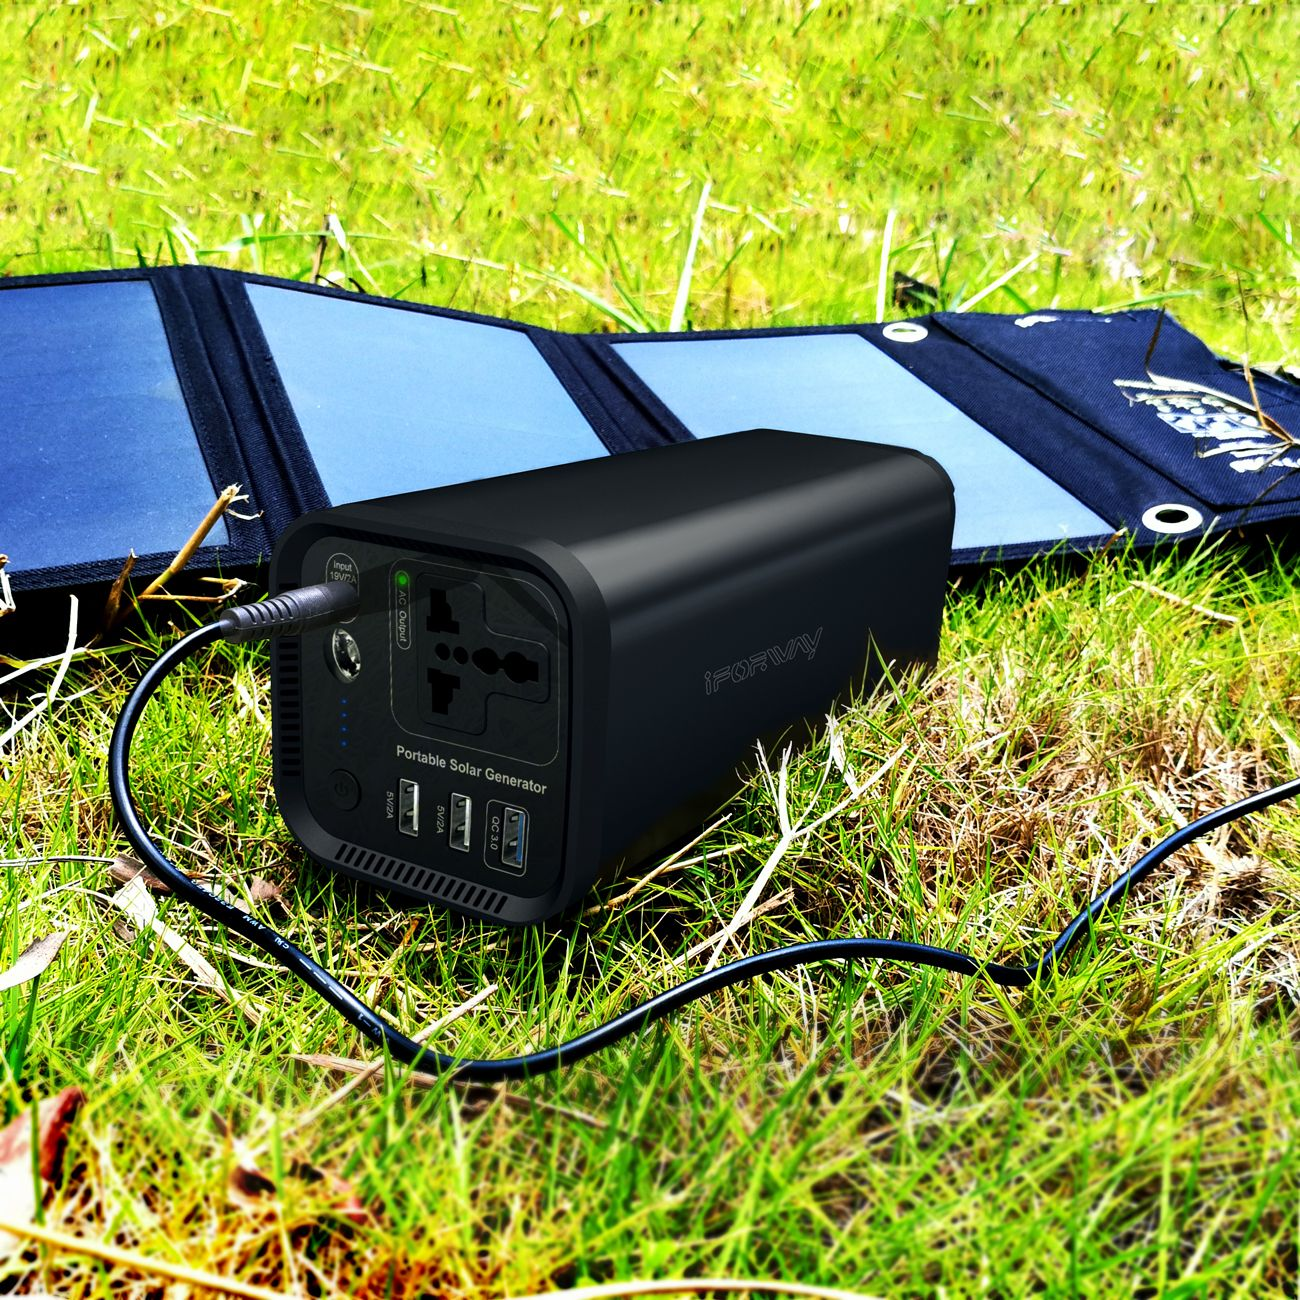 1 Pure Sine Wave Inverter 2 Charged By Adapter Car Solar Panel Full Energy All Day 3 Pow Portable Solar Power Solar Powered Generator Solar Power Station